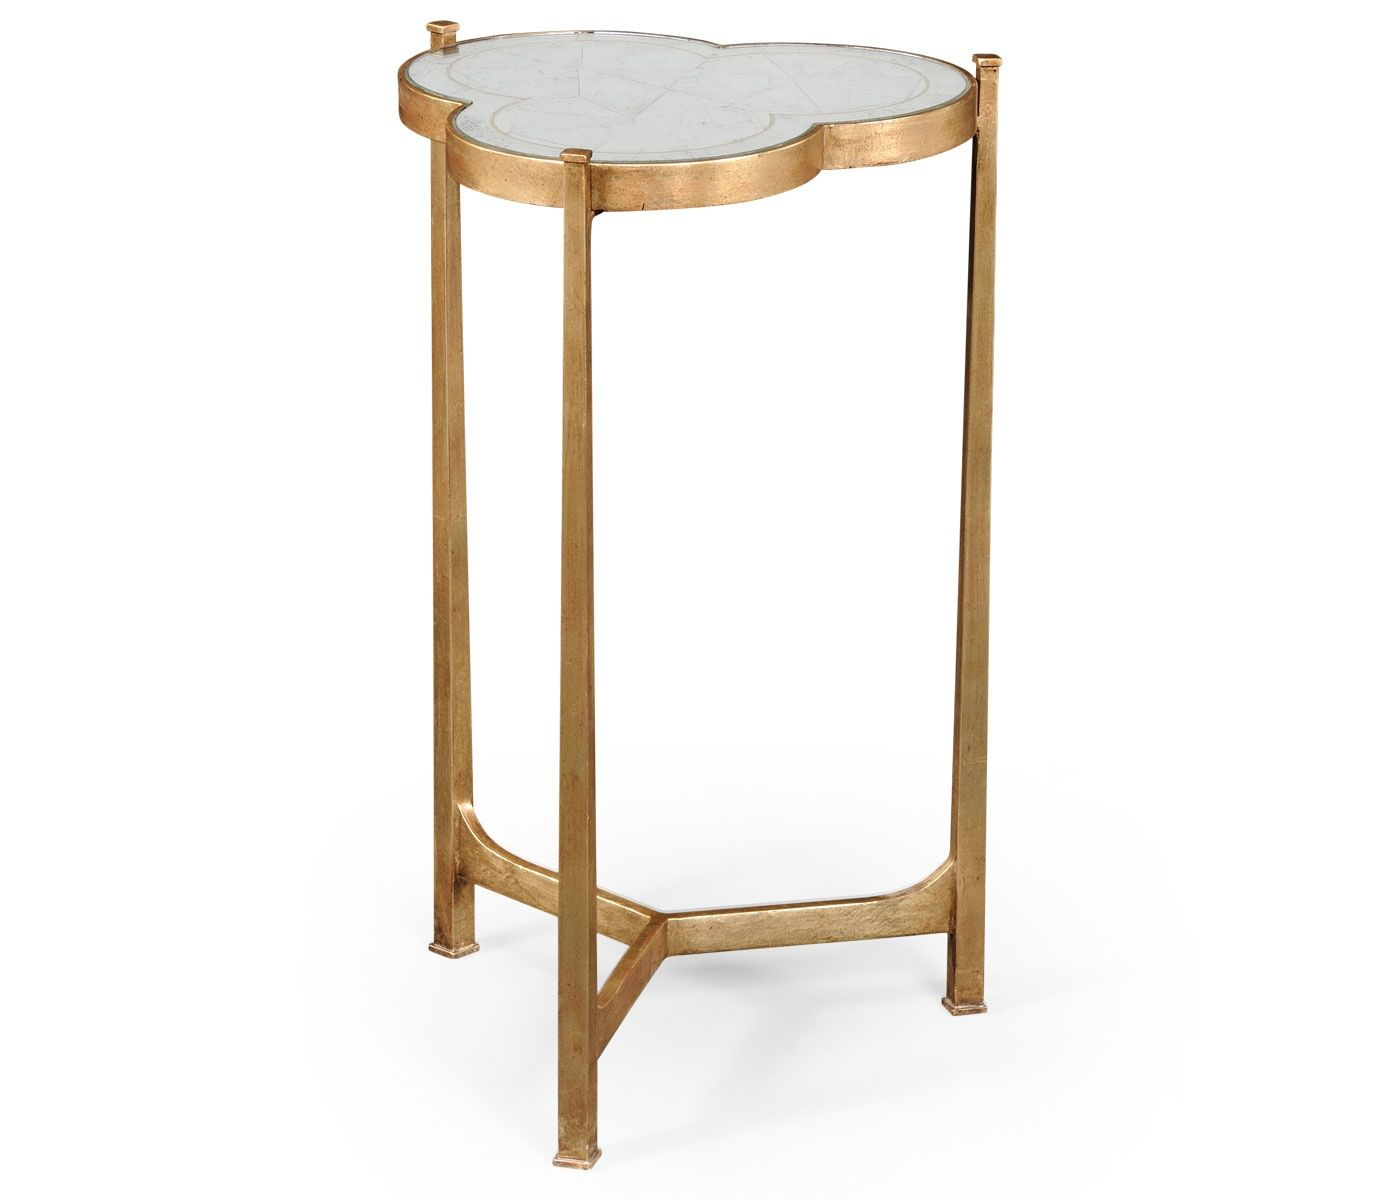 jonathan charles furniture designer mirrored side table on exclusive modern nesting end tables design ideas very functional furnishings id=58067